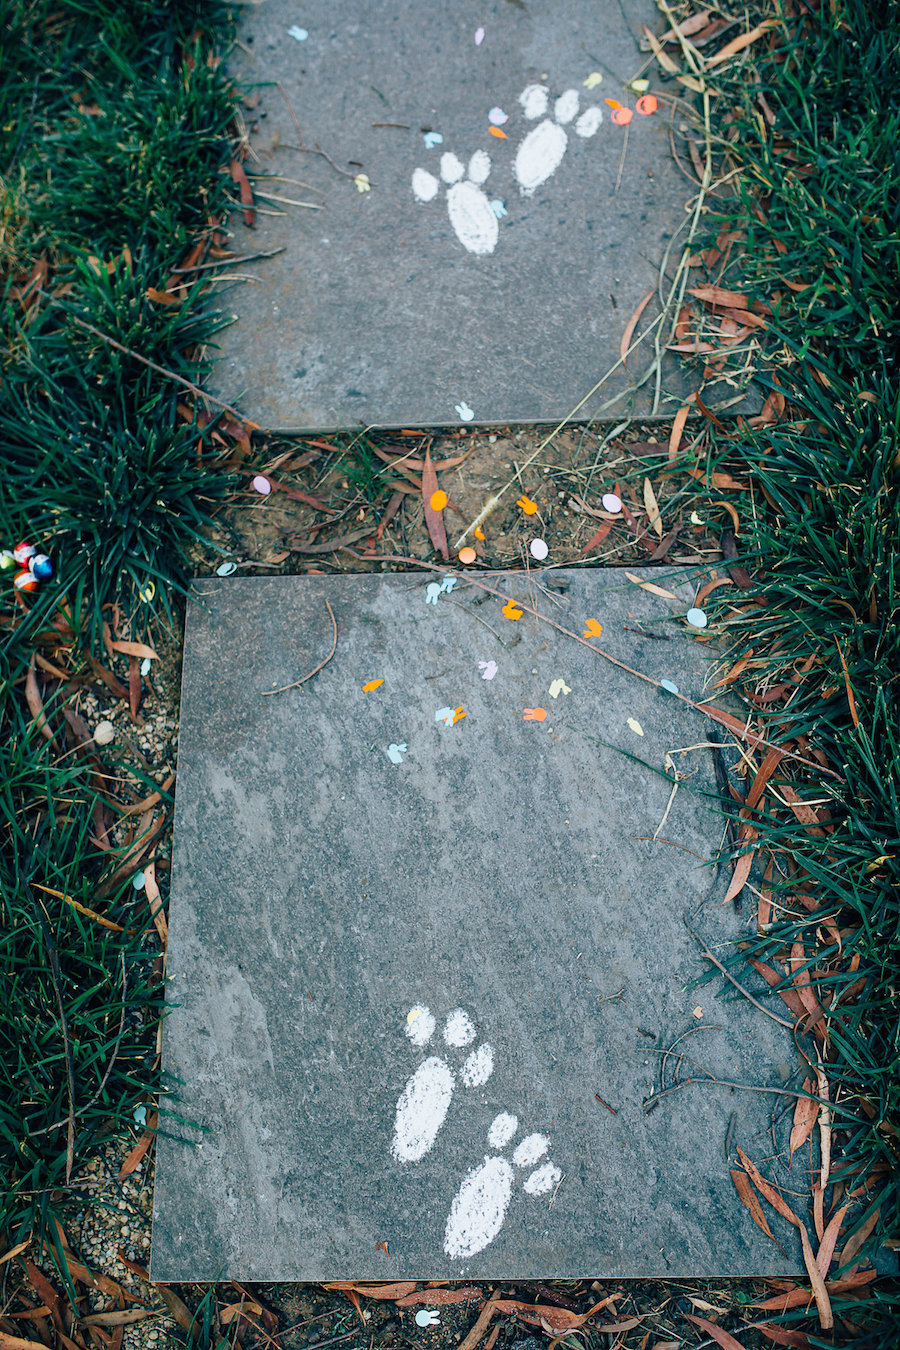 Bunny foot prints